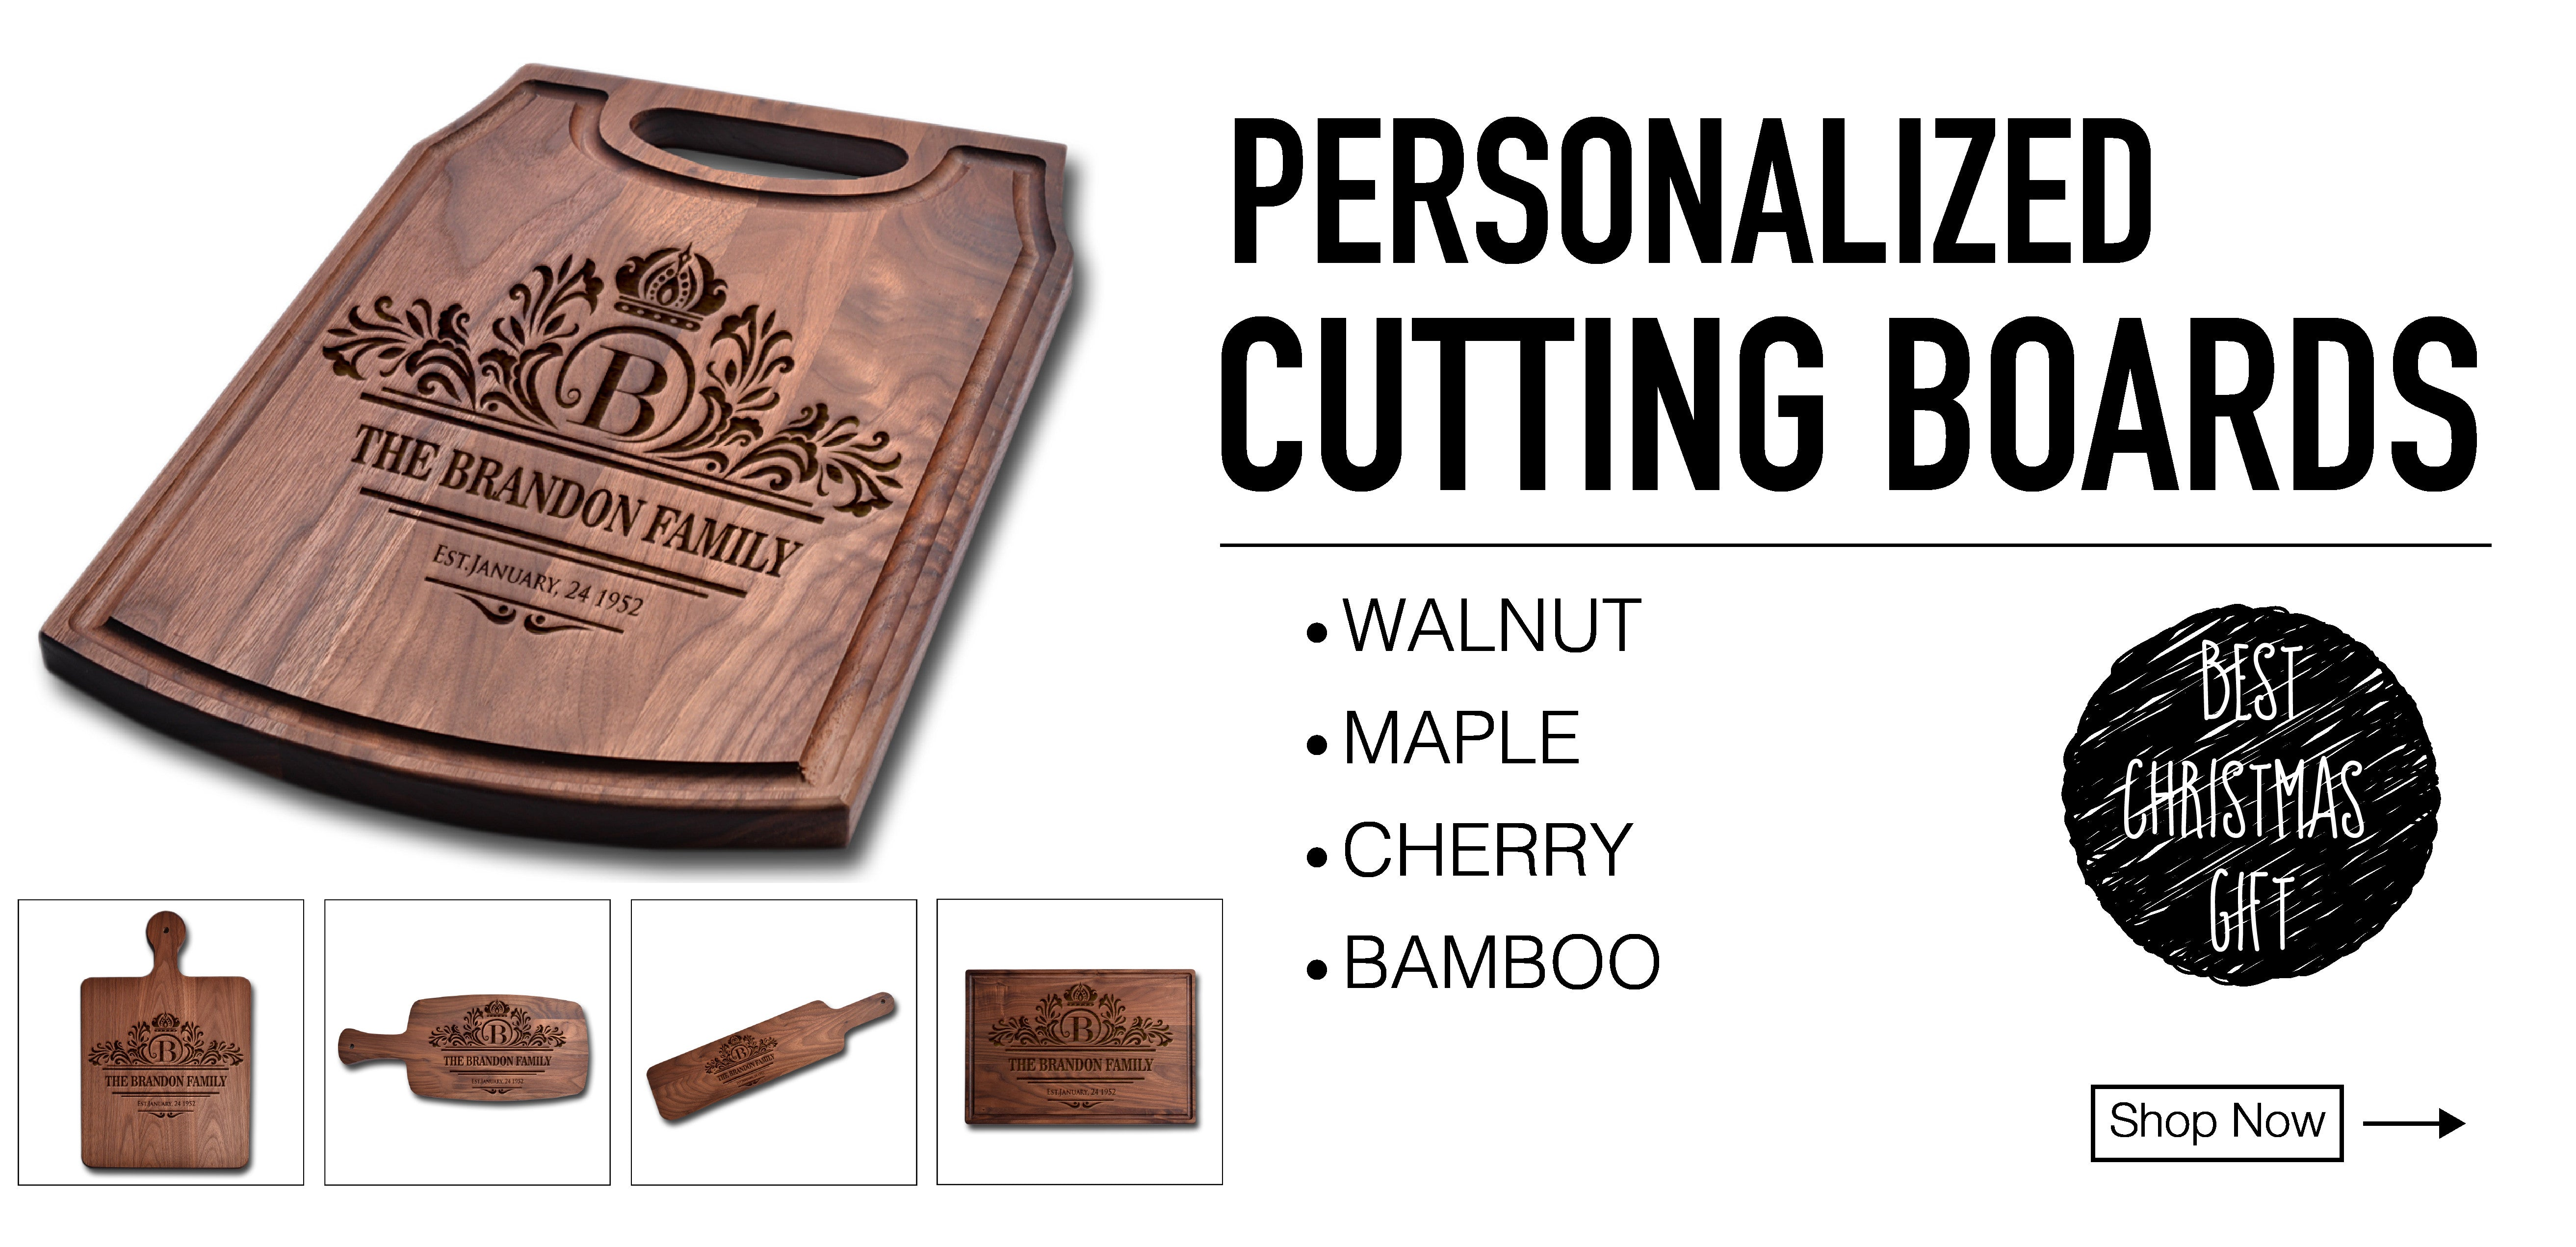 Personalized Cutting Boards Walnut Maple Cherry Bamboo Cutting Boards